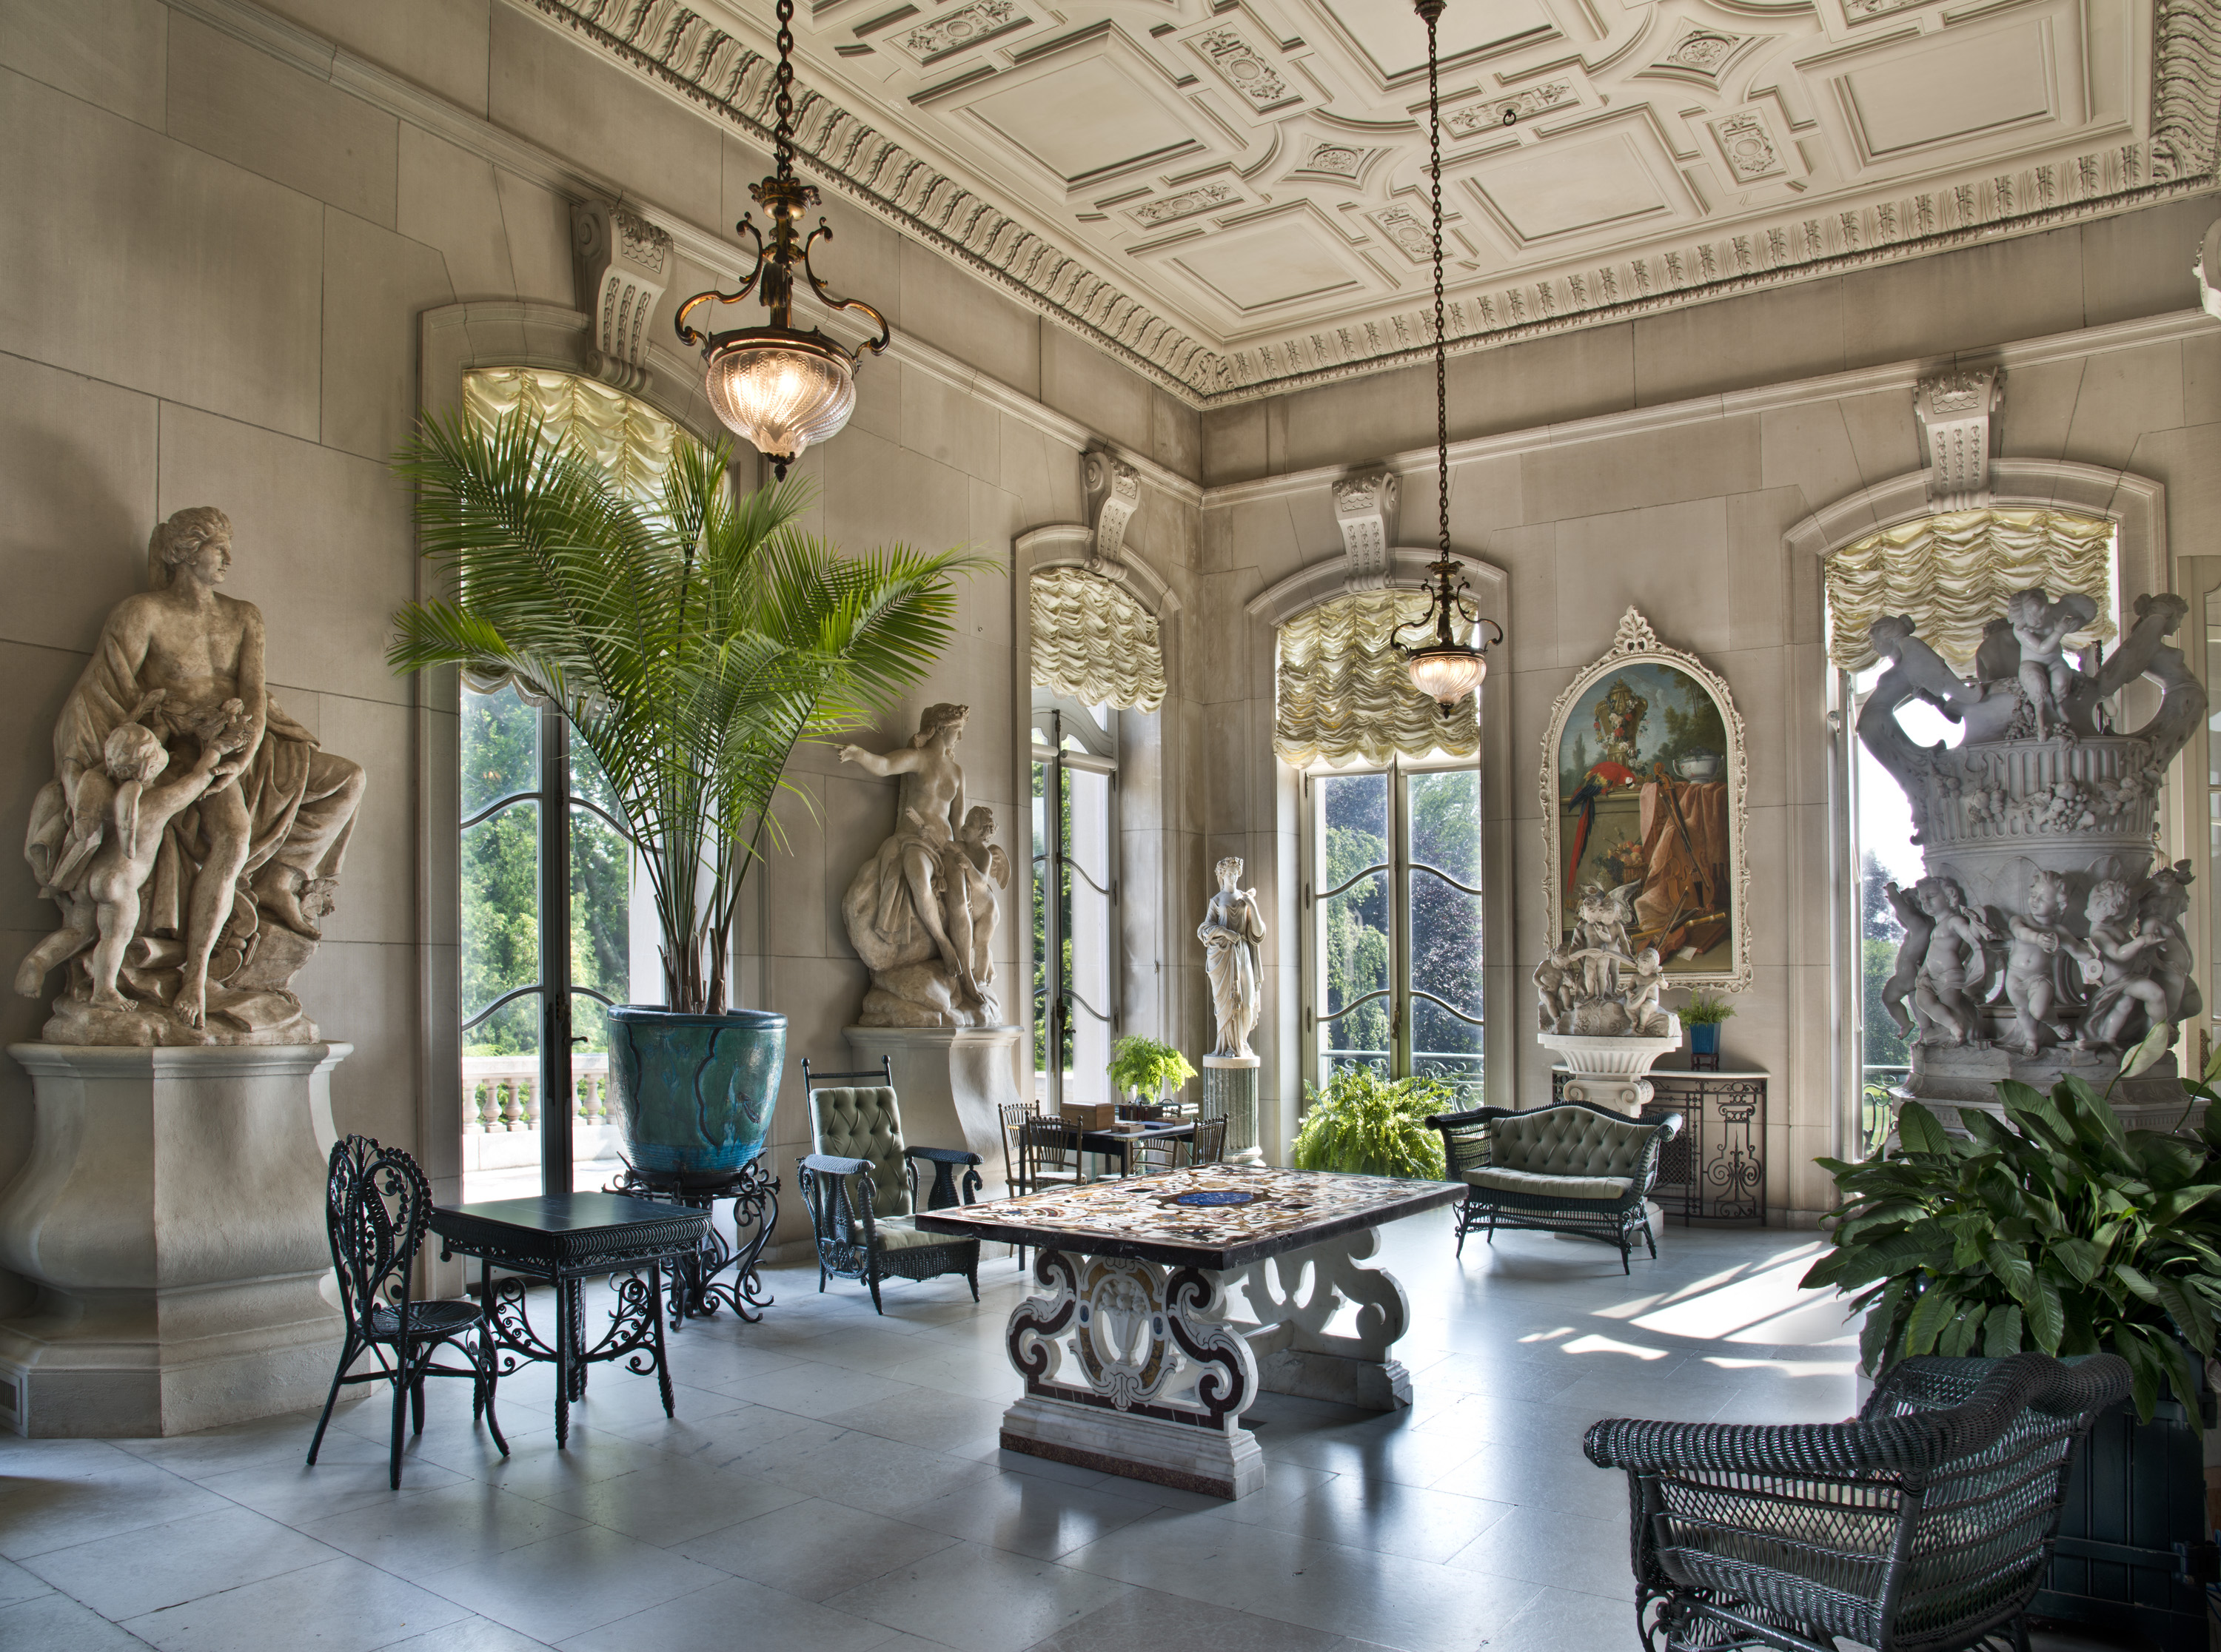 The Elms Conservatory A French Inspired Garden Room